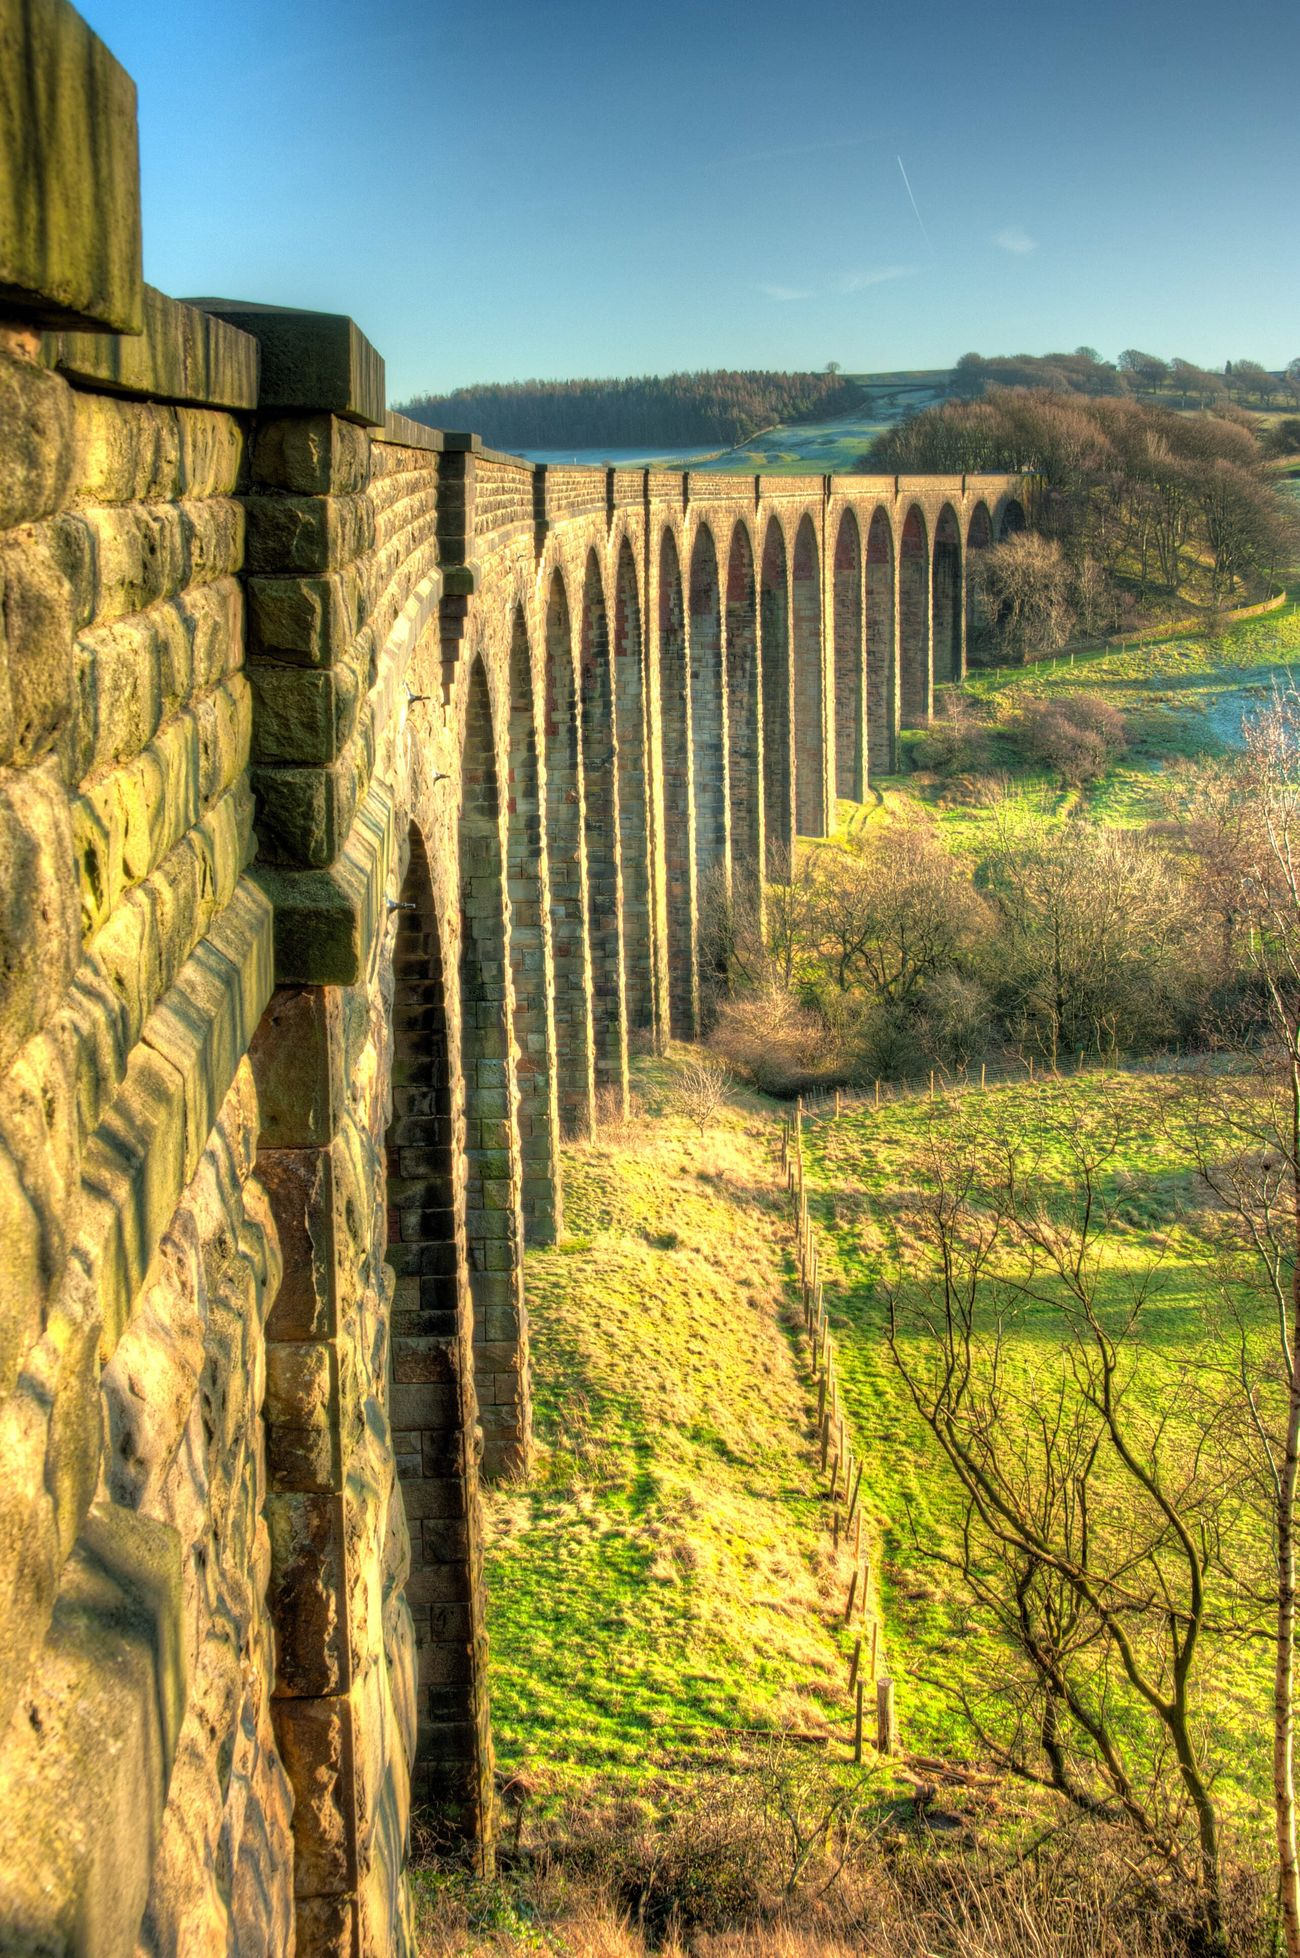 Bridge Viaduct Sunny Architecture Railway Transport Countryside